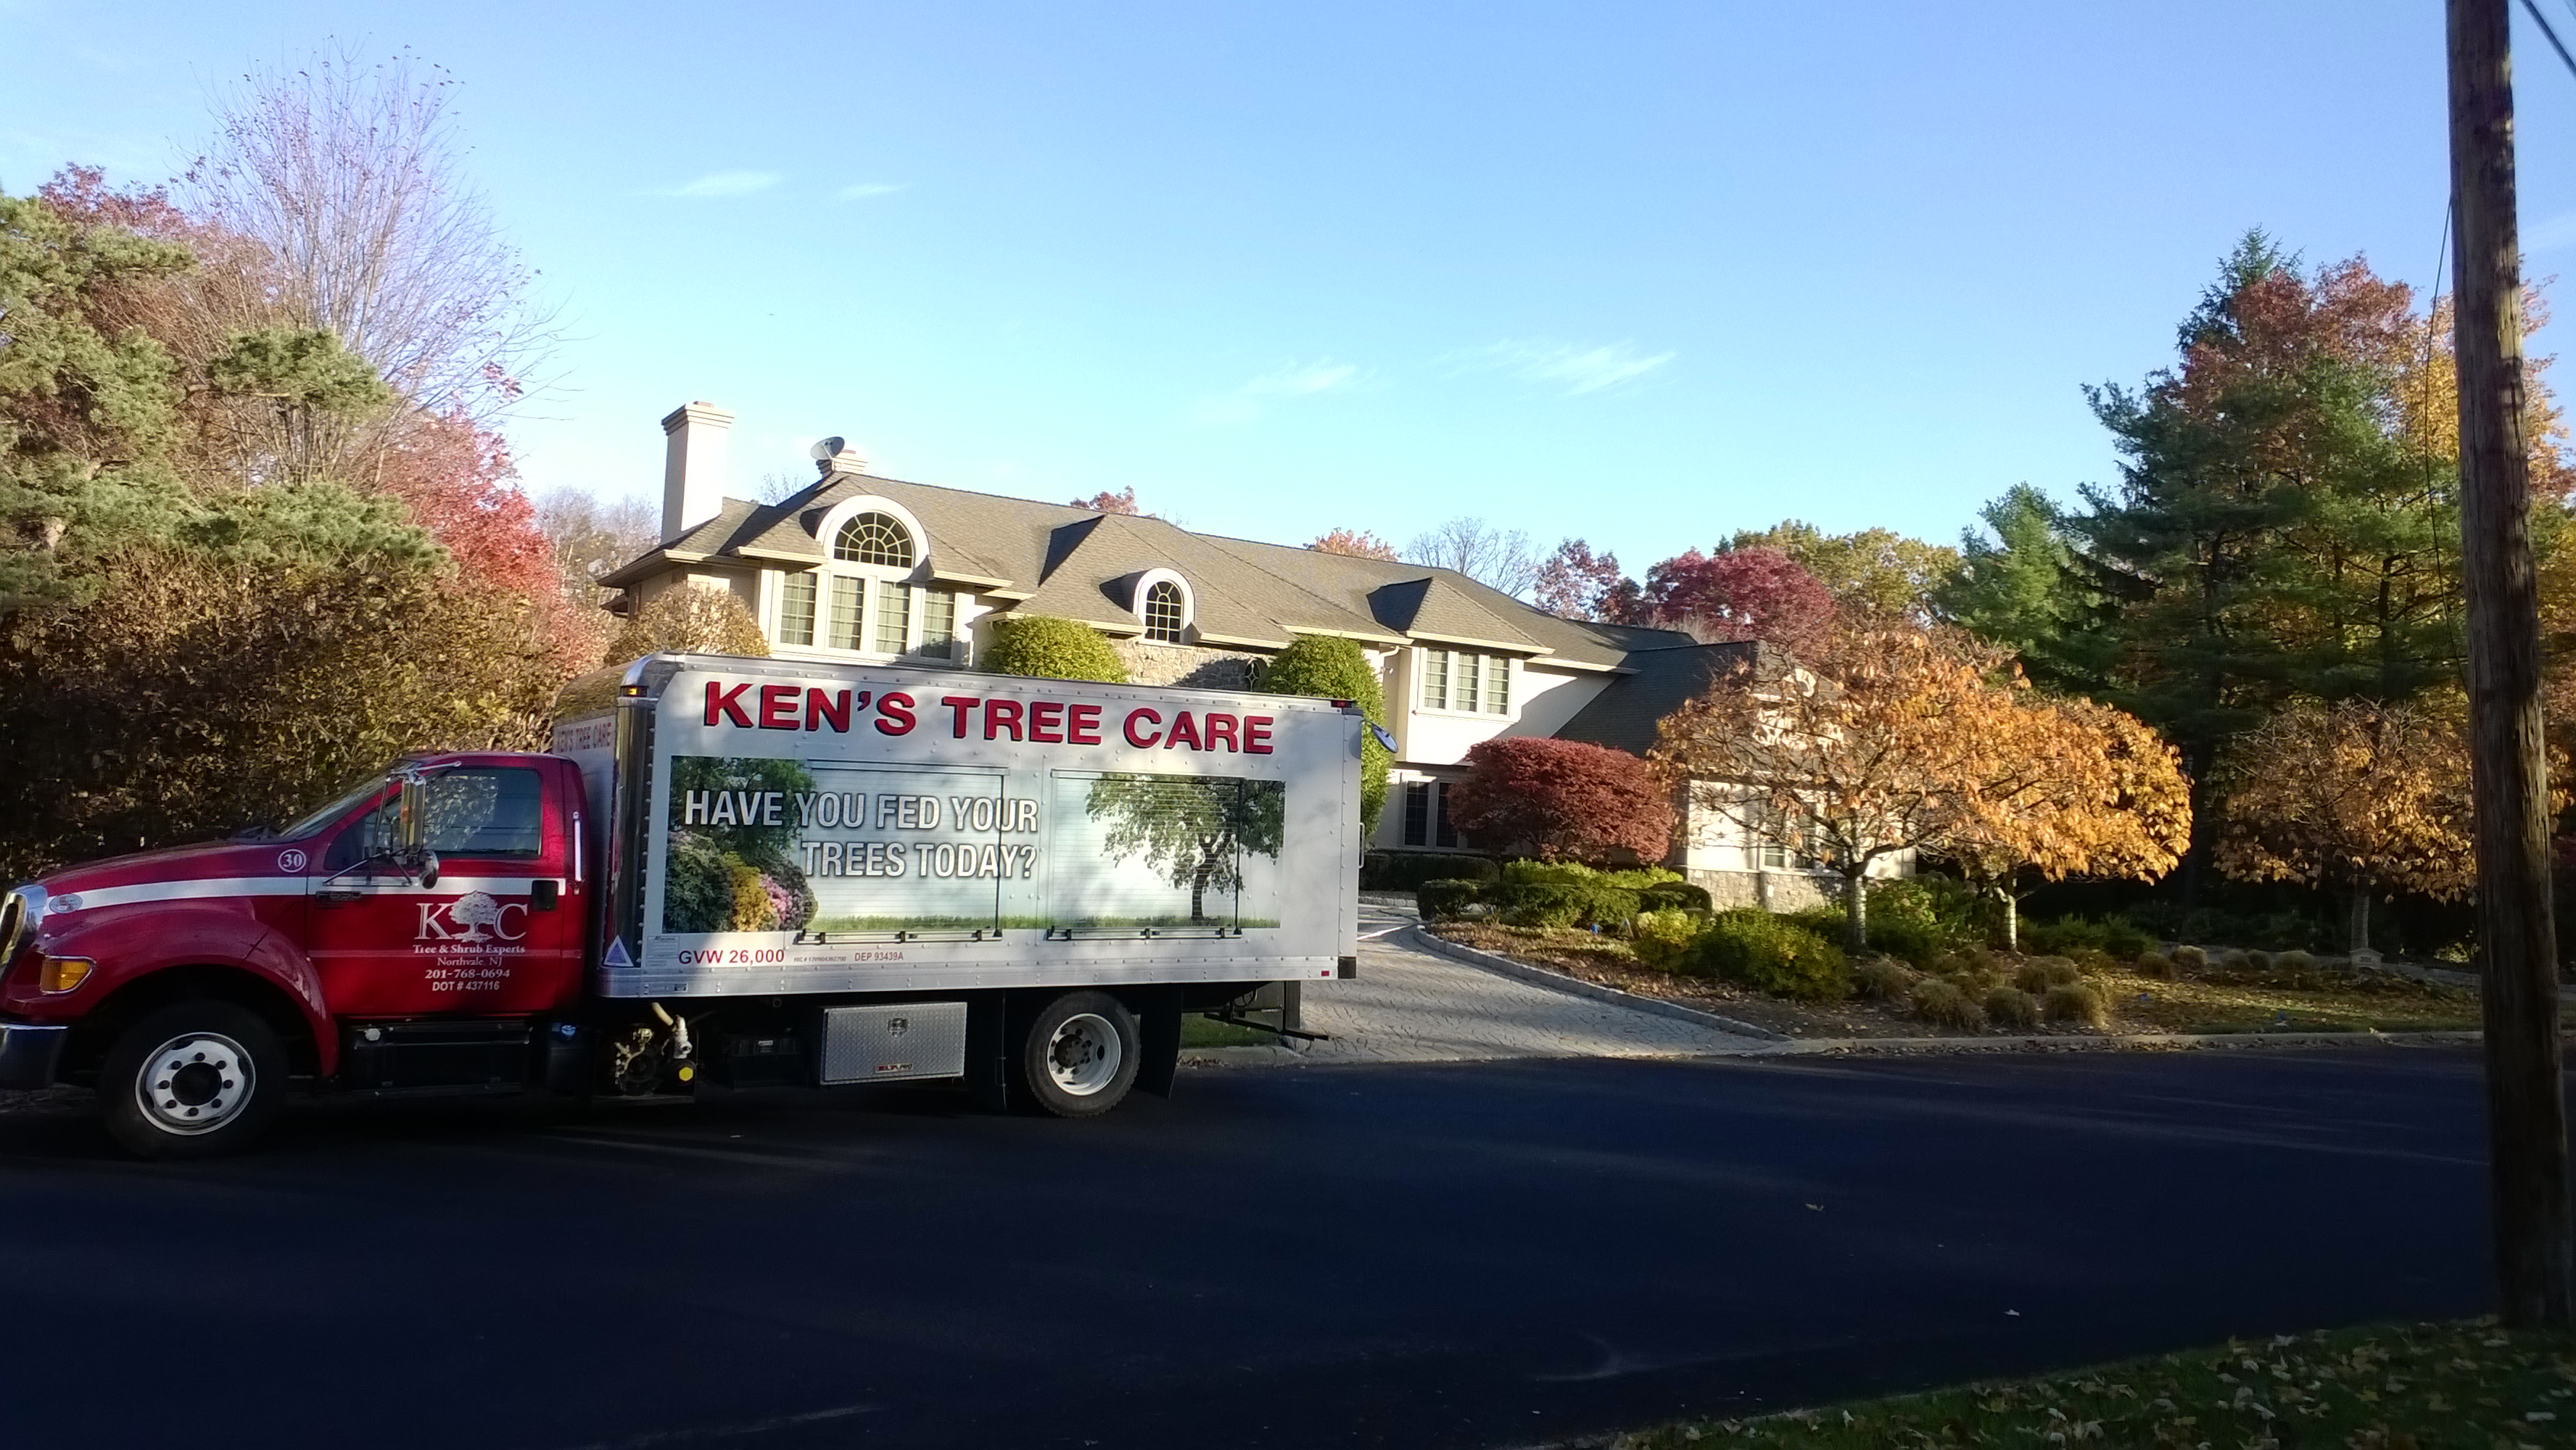 Kens Tree Care on the job